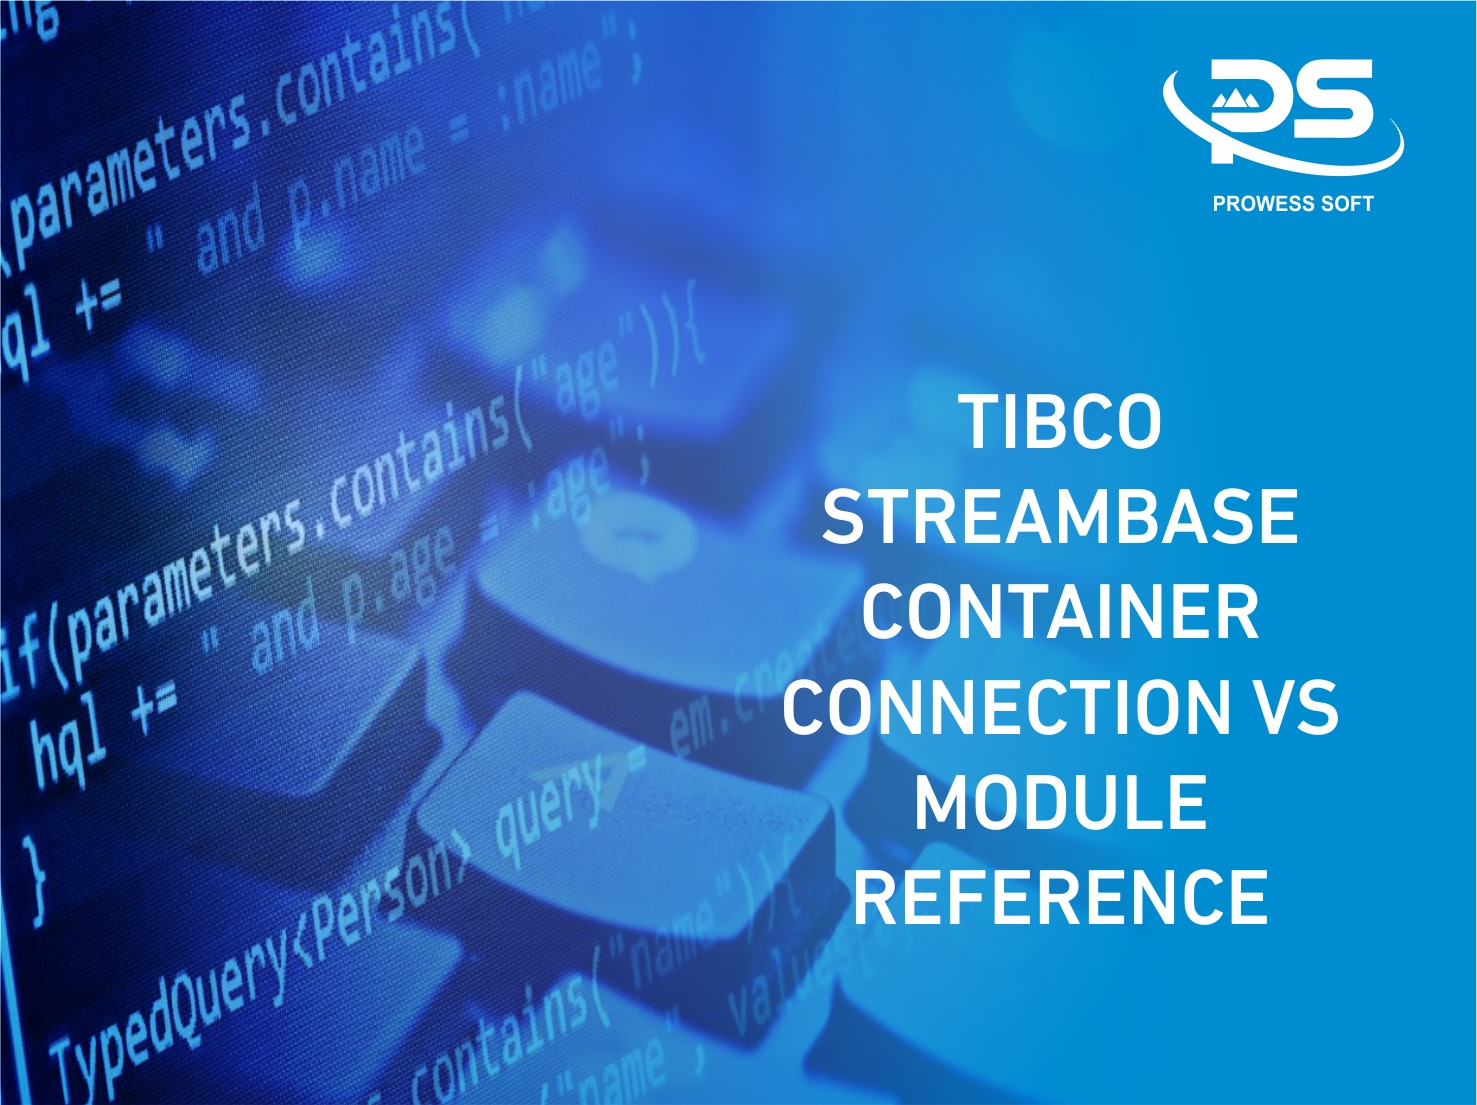 Image Of TIBCO STREAMBASE CONTAINER CONNECTION VS MODULE REFERENCE